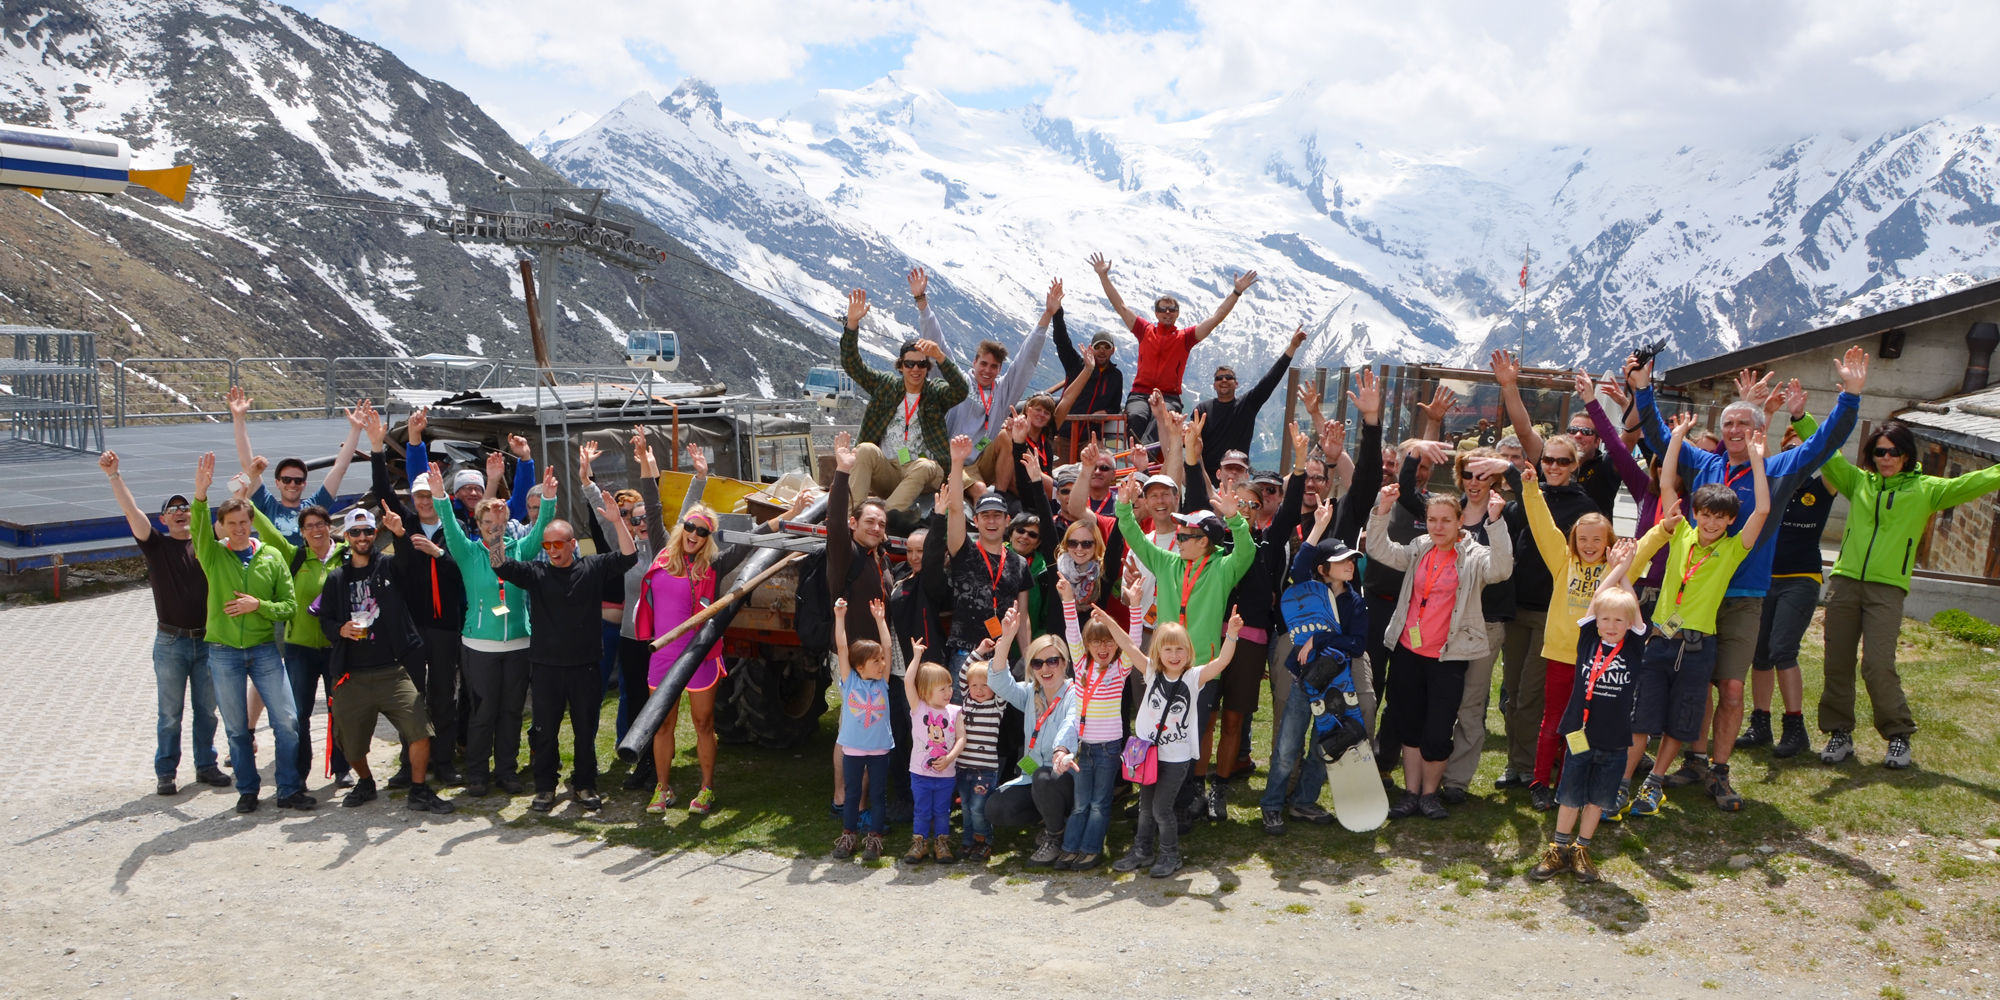 Mountain Cleaning Day in the Free Republic of Holidays Saas-Fee